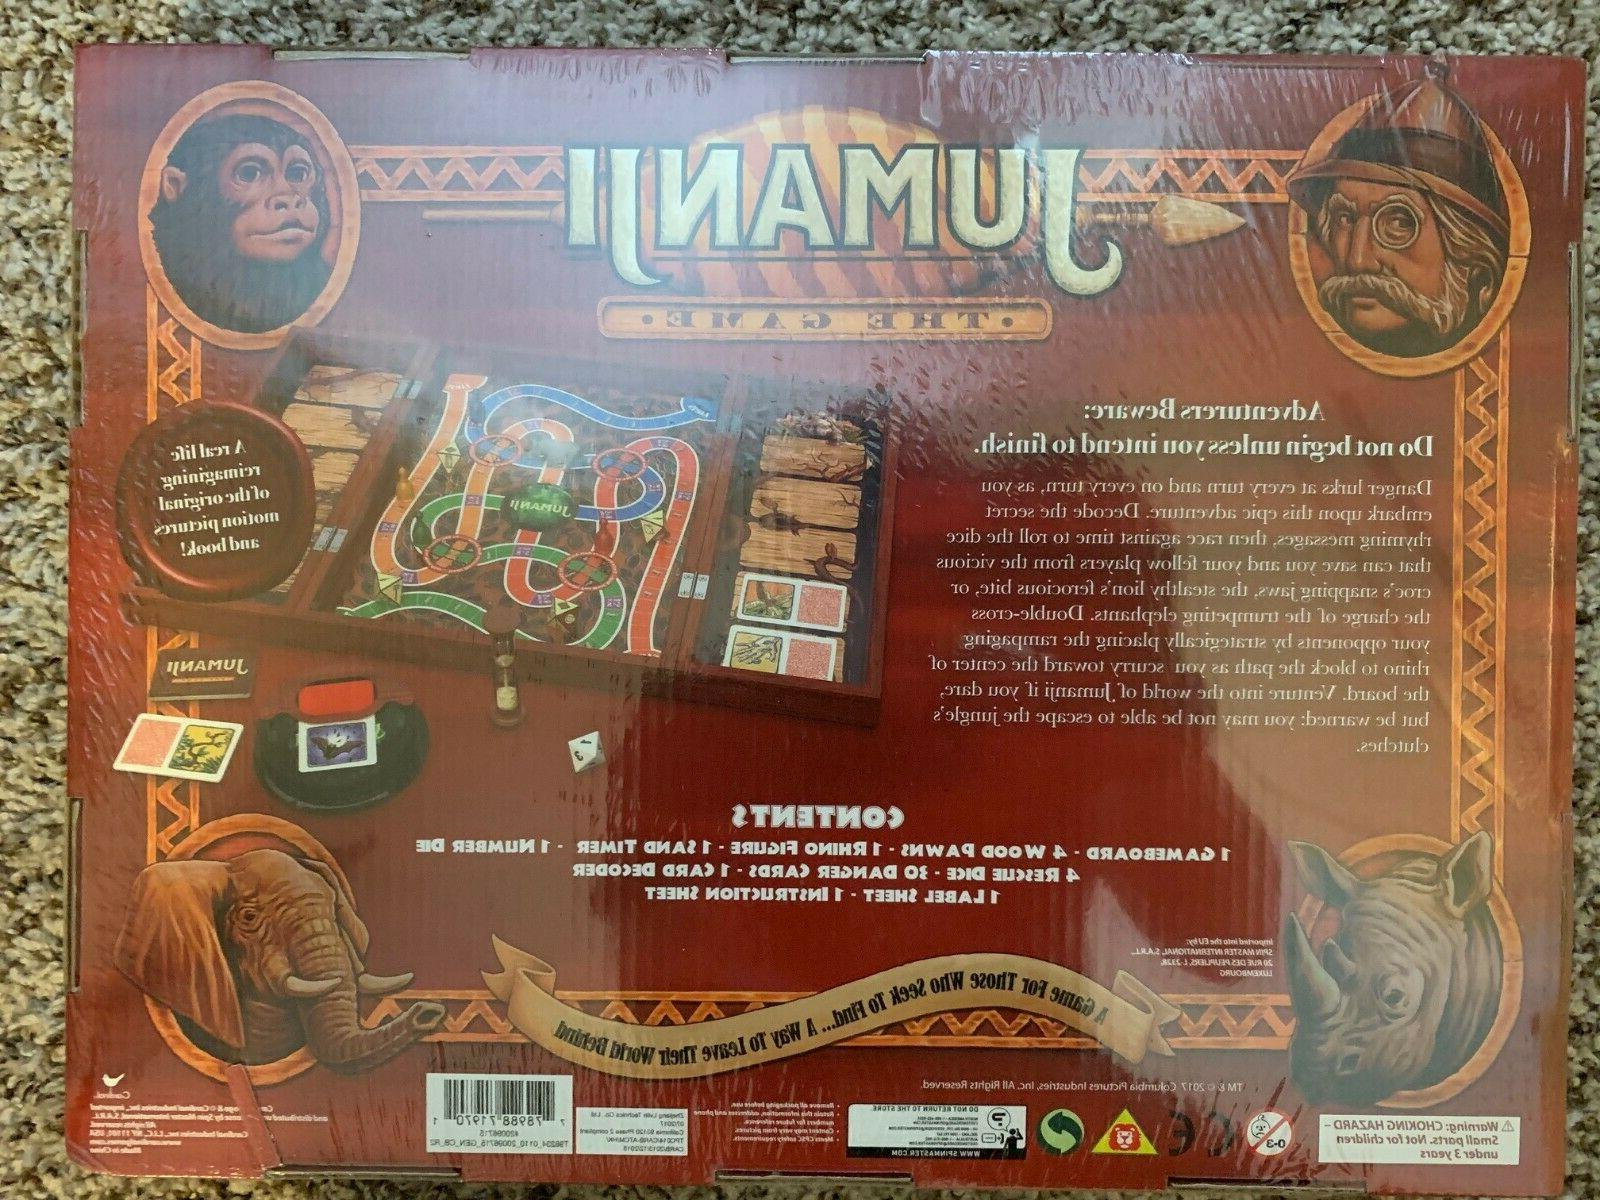 Jumanji The Game Real Wooden Box Toys Puzzles Family